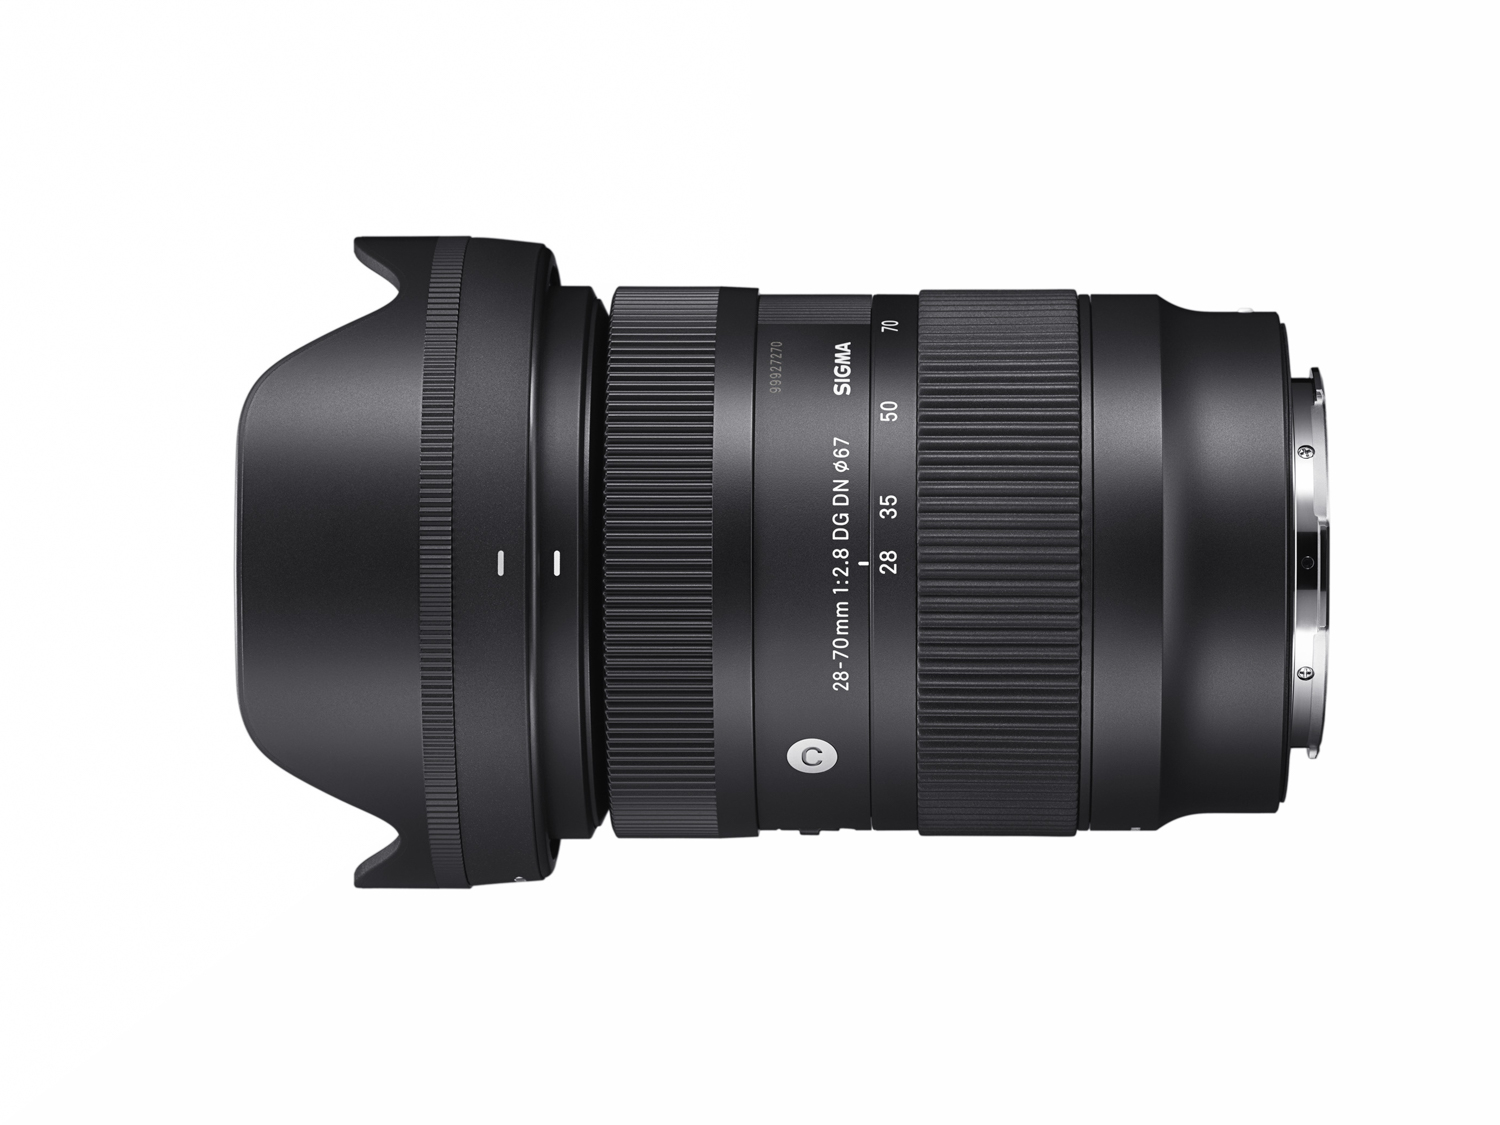 Sigma 28-70mm f/2.8 announcement